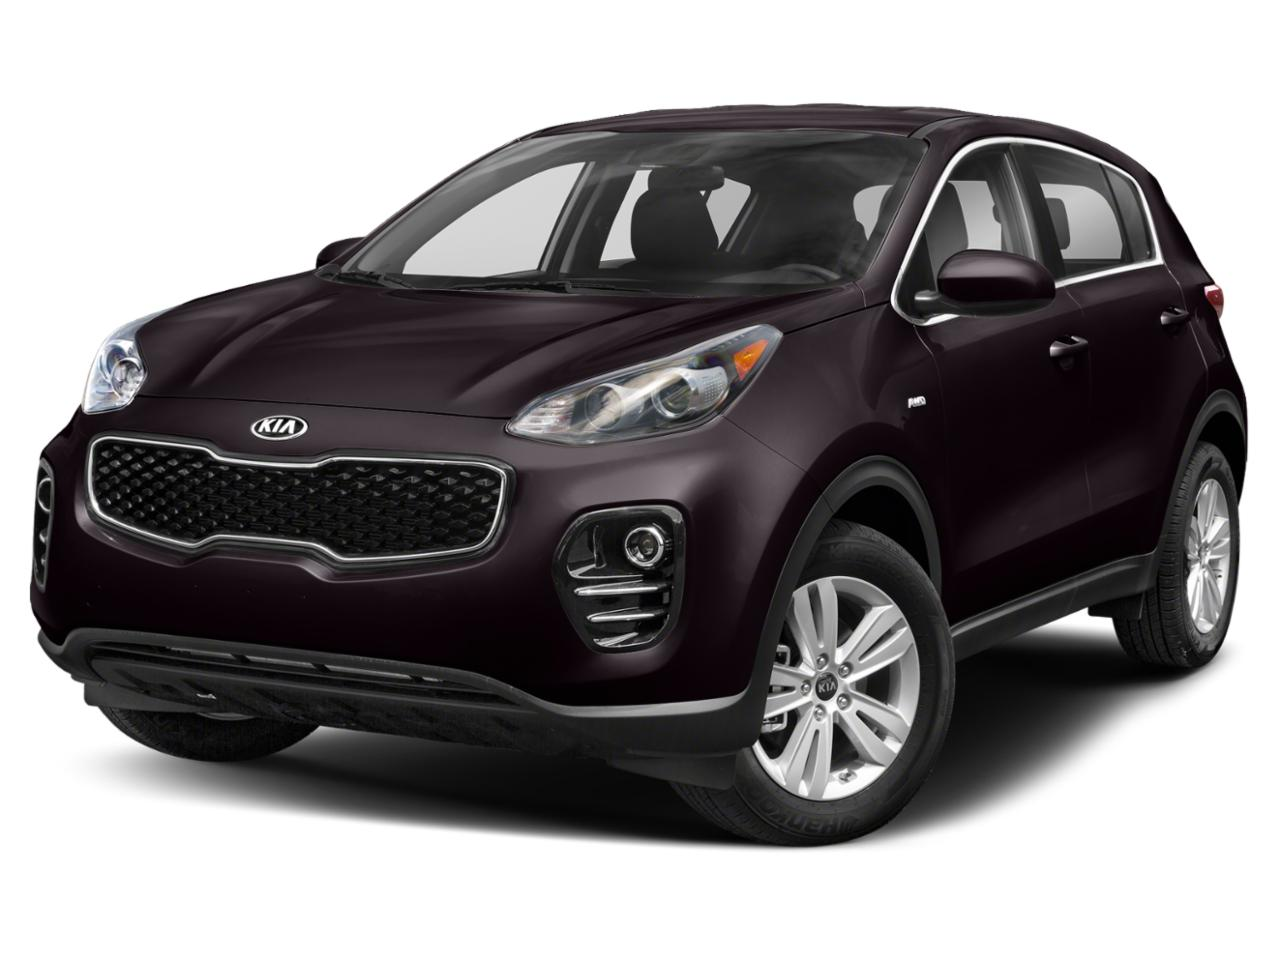 2018 Kia Sportage Vehicle Photo in Salem, VA 24153